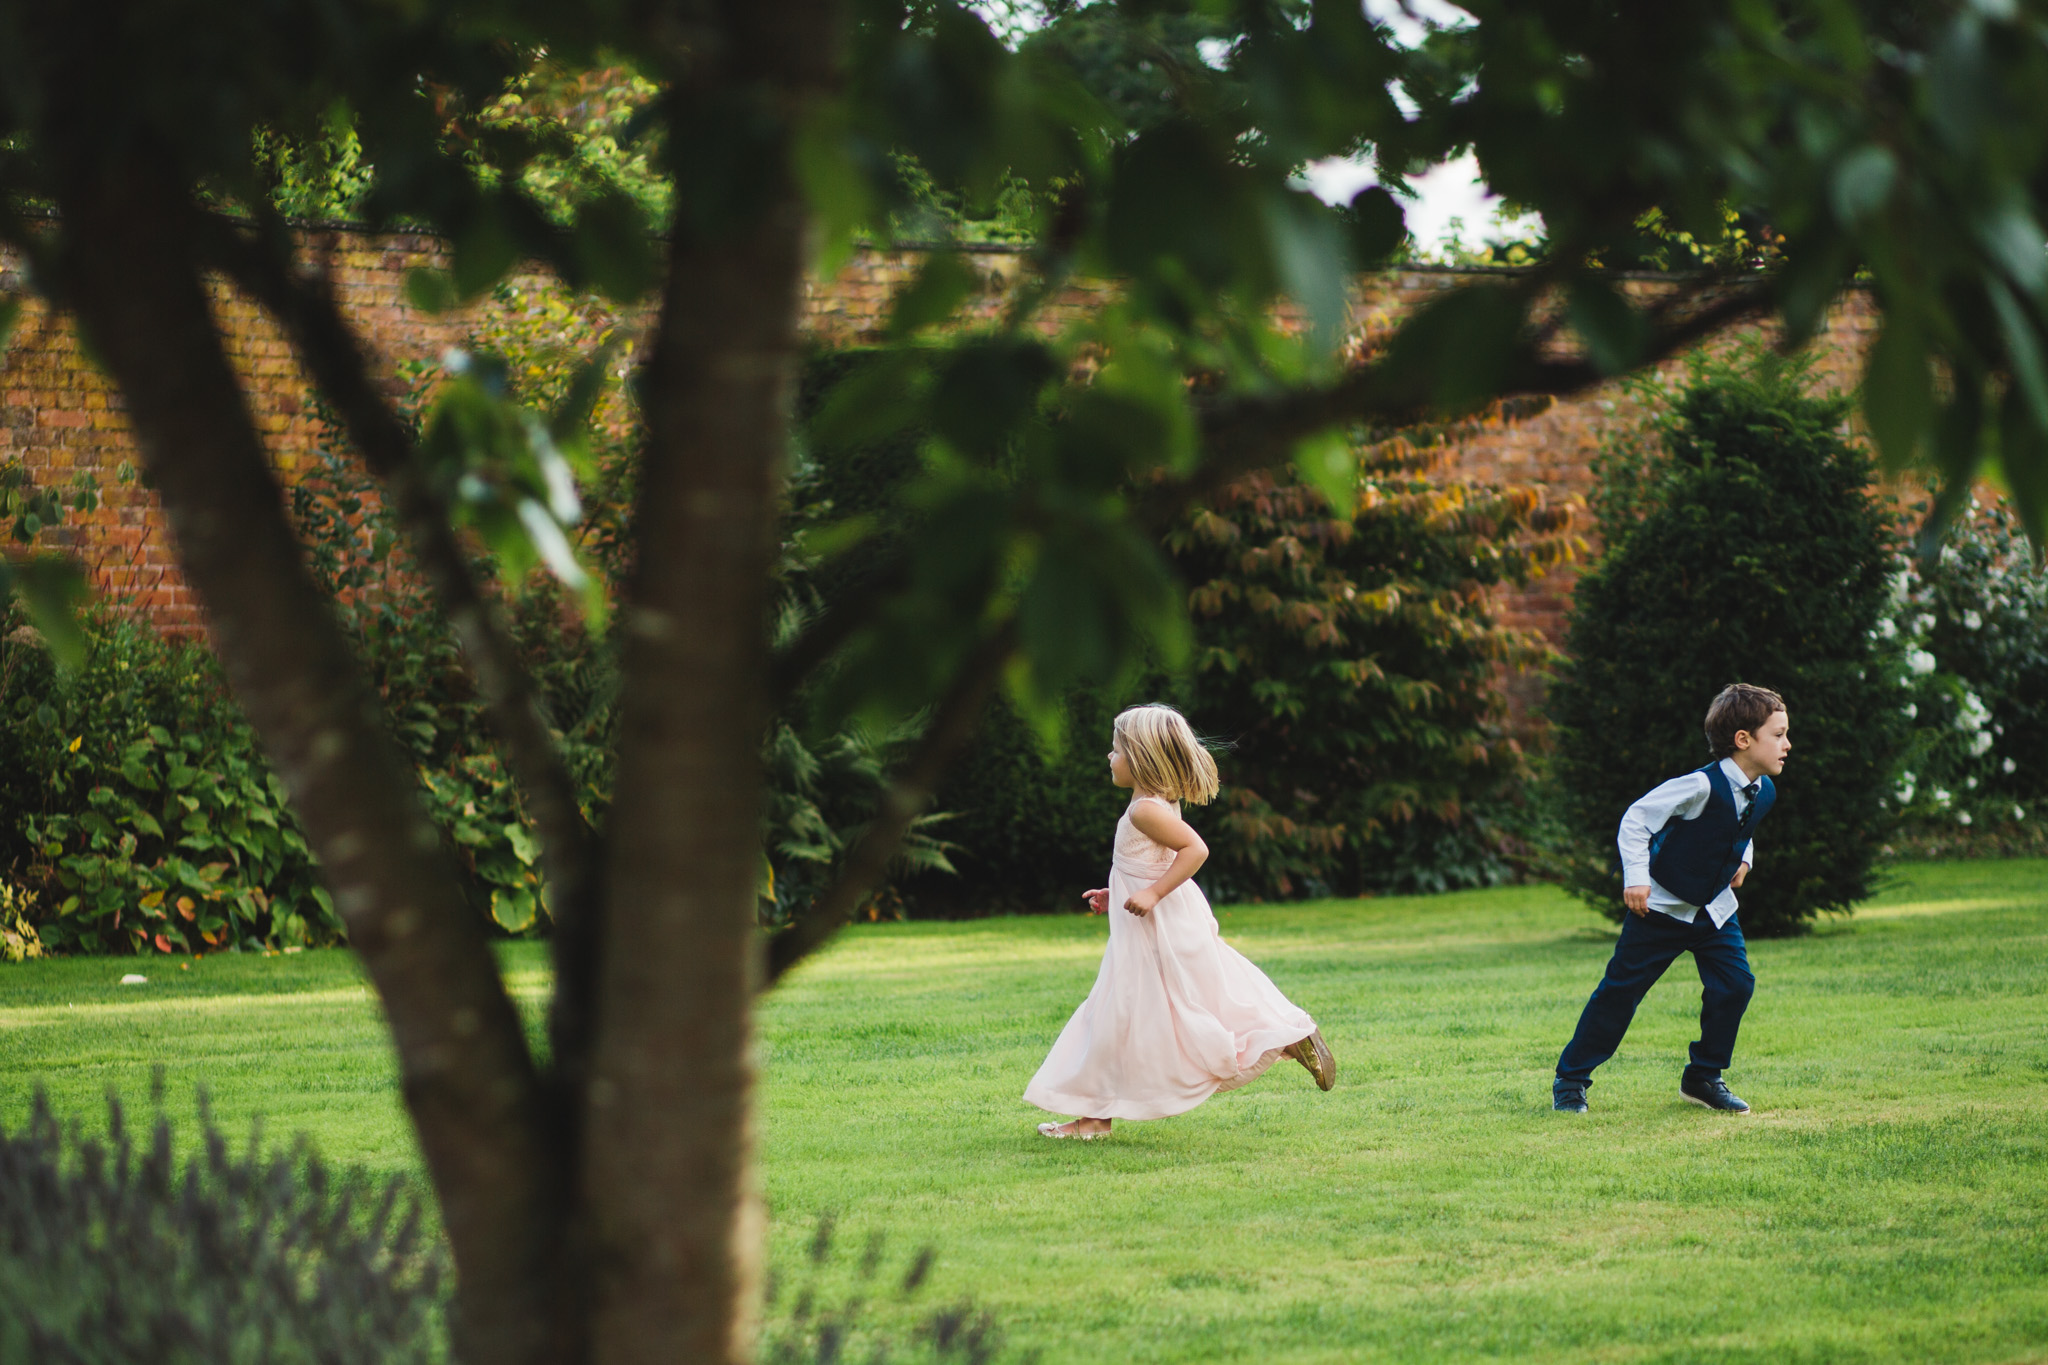 cat-lane-weddings__combermere-abbey-wedding-photography__clw__1806__C5A1686.jpg